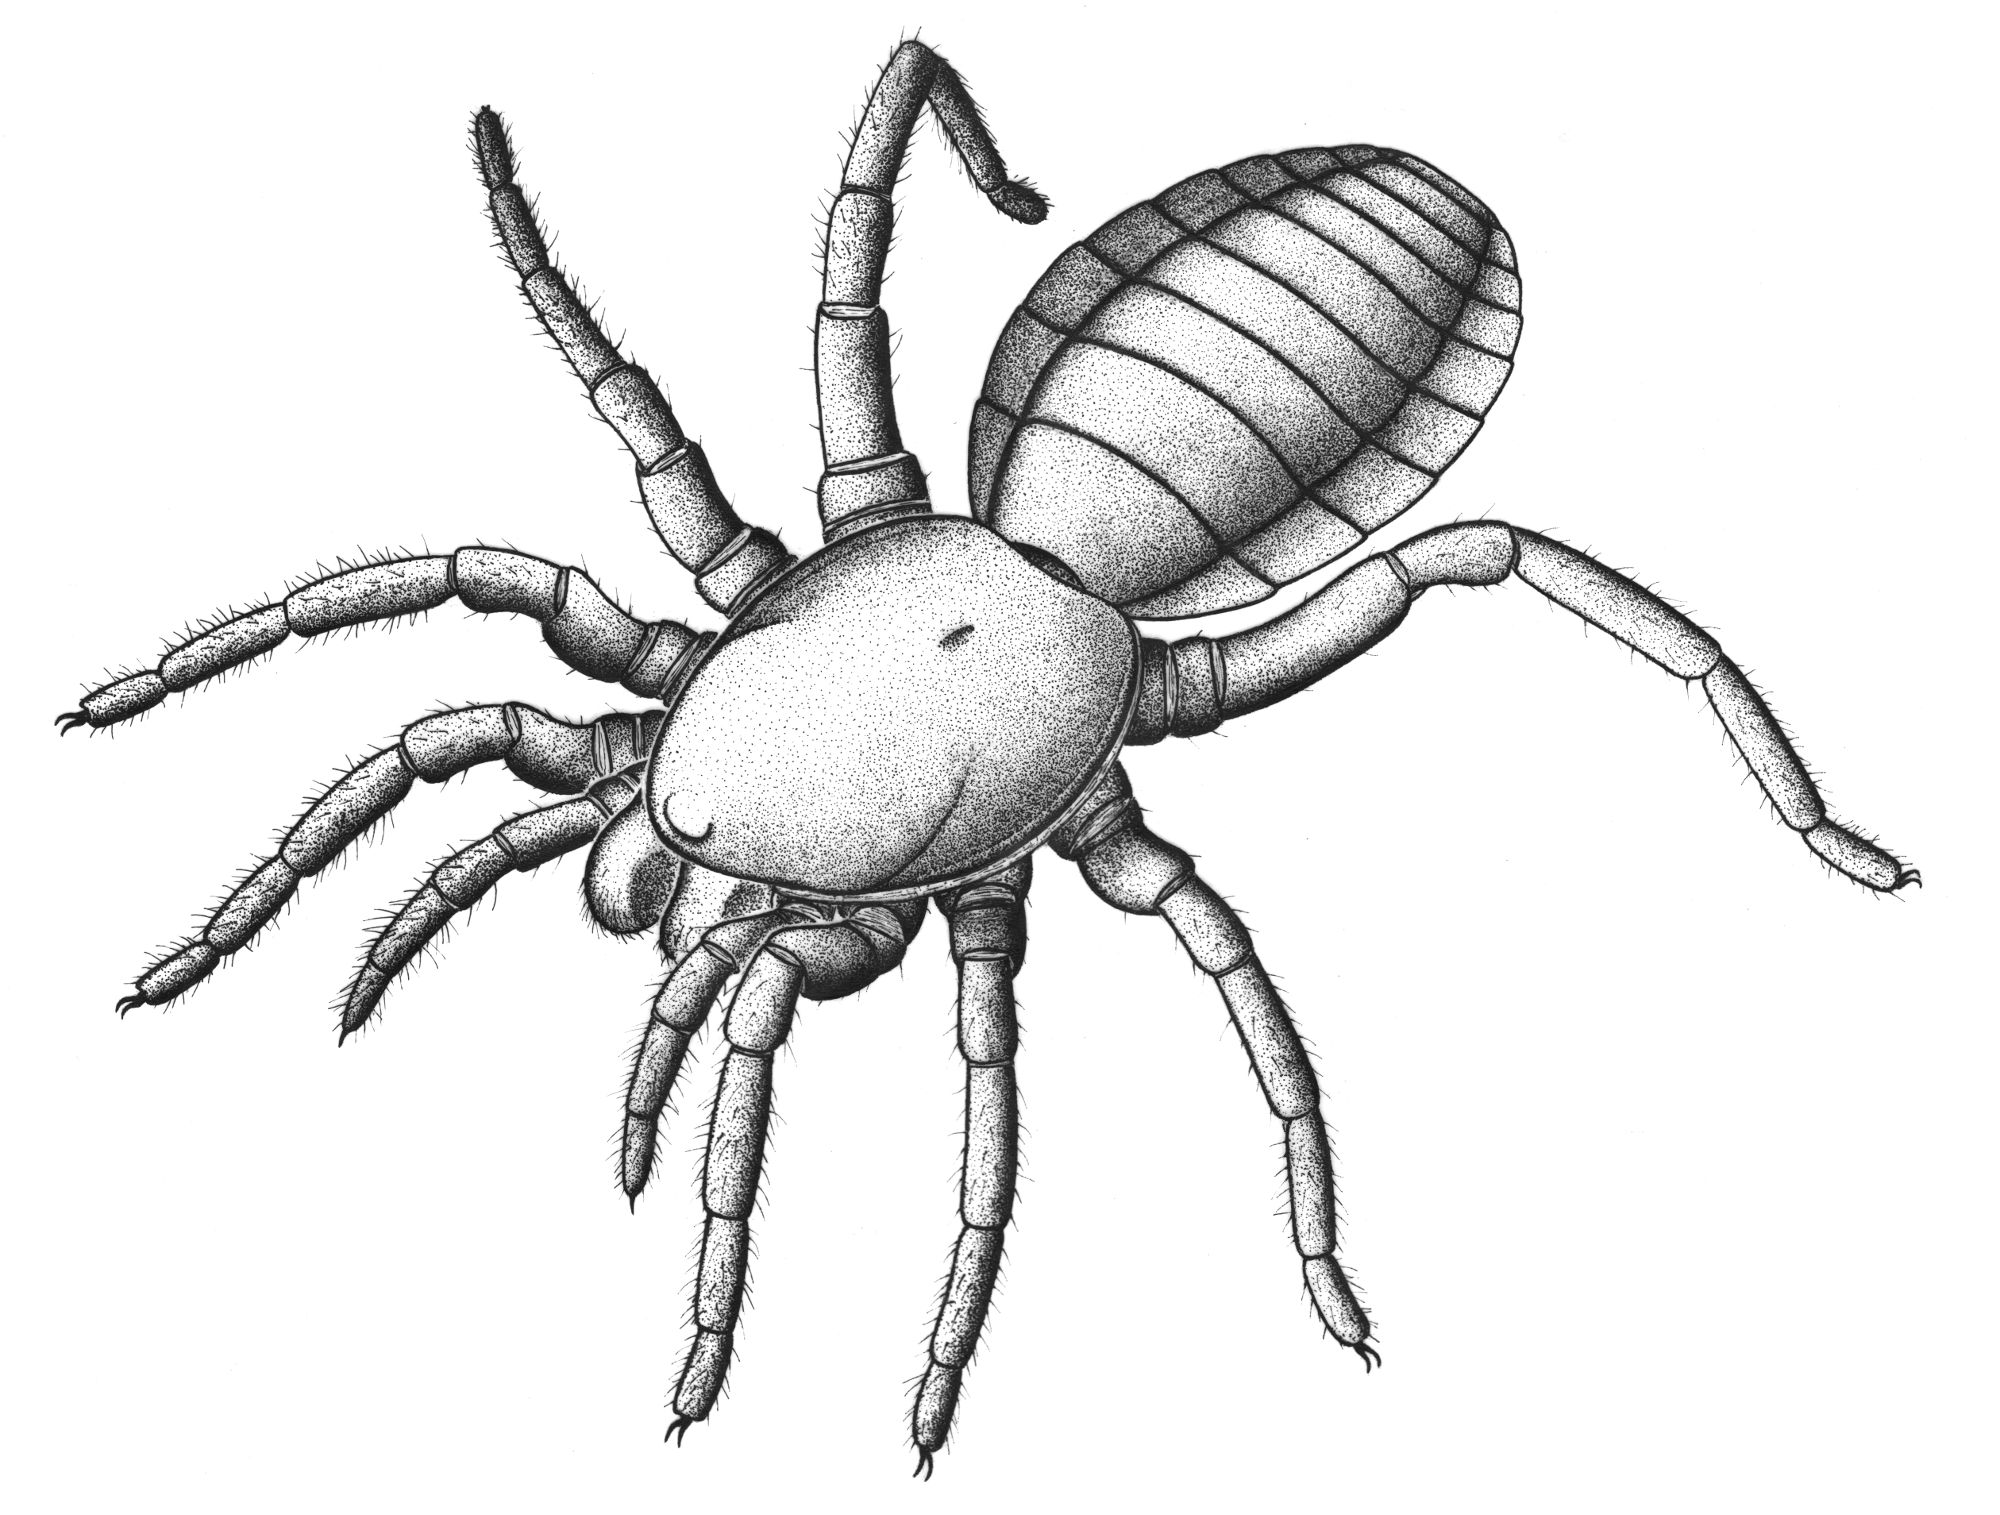 Suggested appearance of the spiderlike arachnid Idmonarachne brasieri. Illustration courtesy of Garwood RJ et al., Proc. R. Soc. B, (2016)